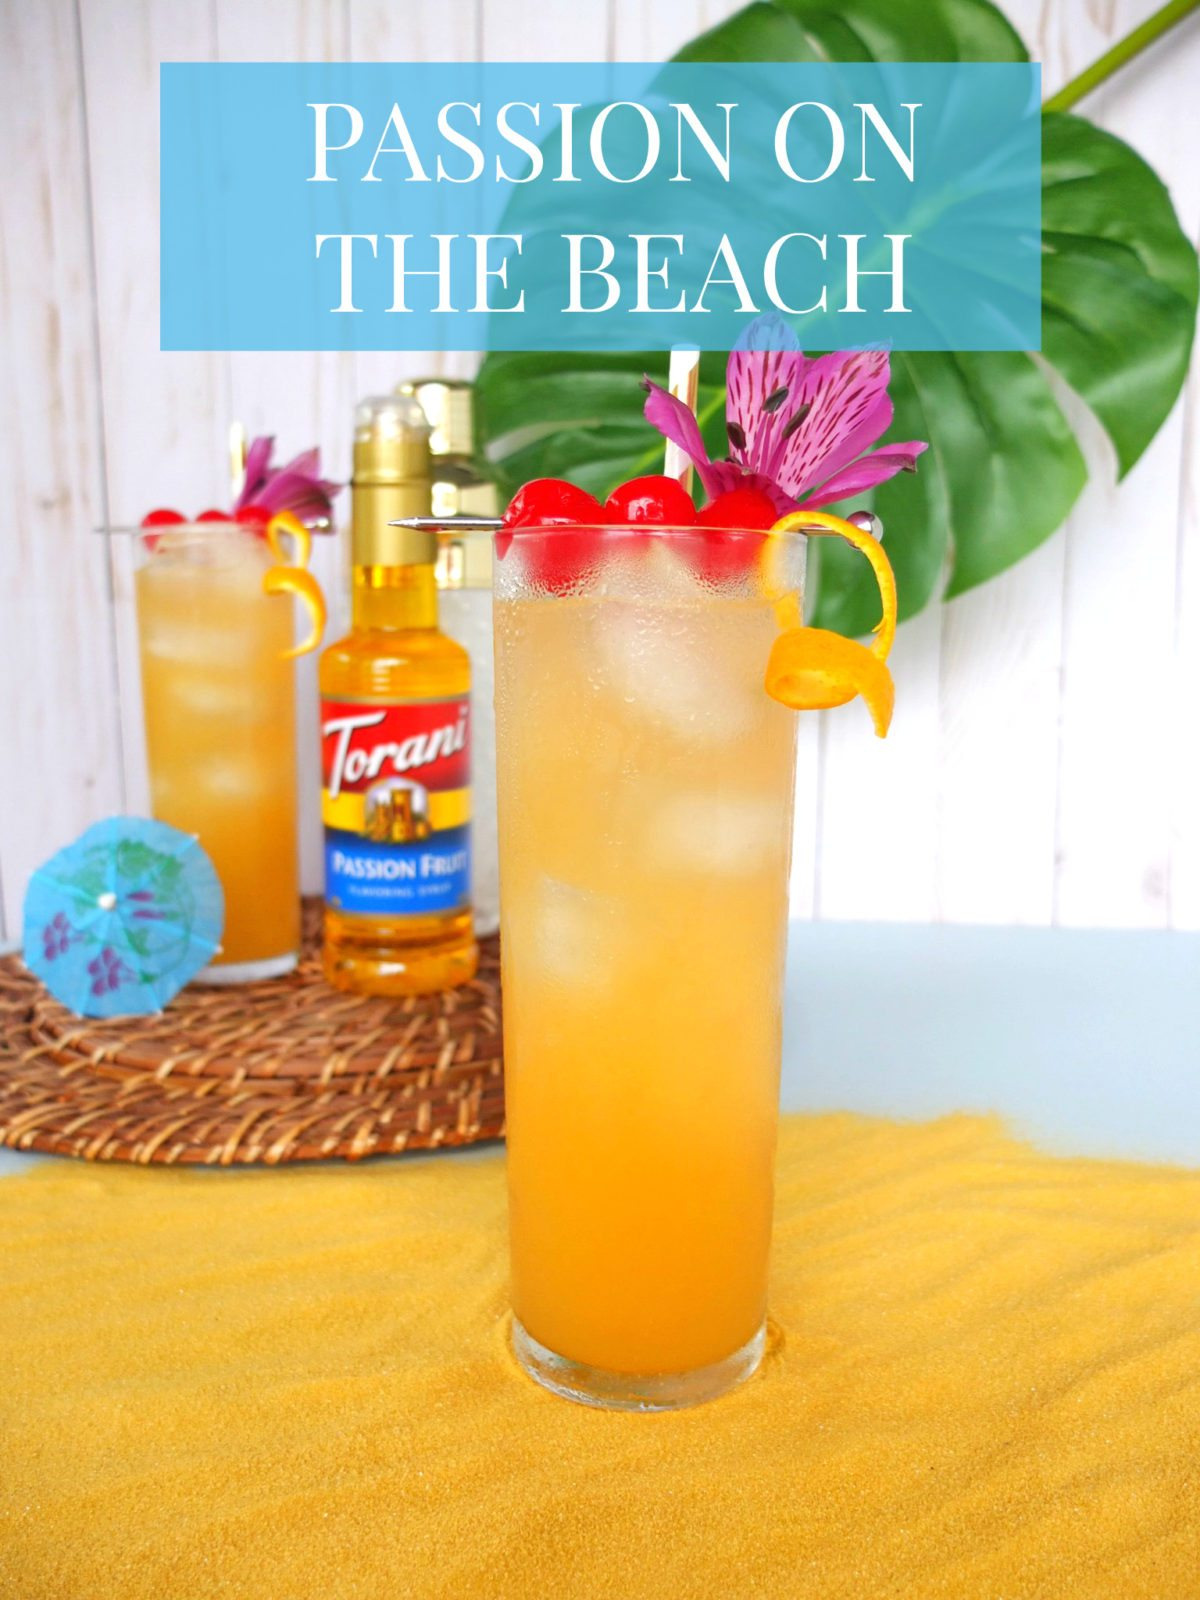 Msg 4 21+ Easy summer Torani Syrup cocktail recipe for a Passion on the Beach. A Passionfruit version of a Sex on The Beach cocktail using Torani Passion Fruit Syrup. #ad #MyToraniSummer @walmart @ToraniFlavor // www.elletalk.com